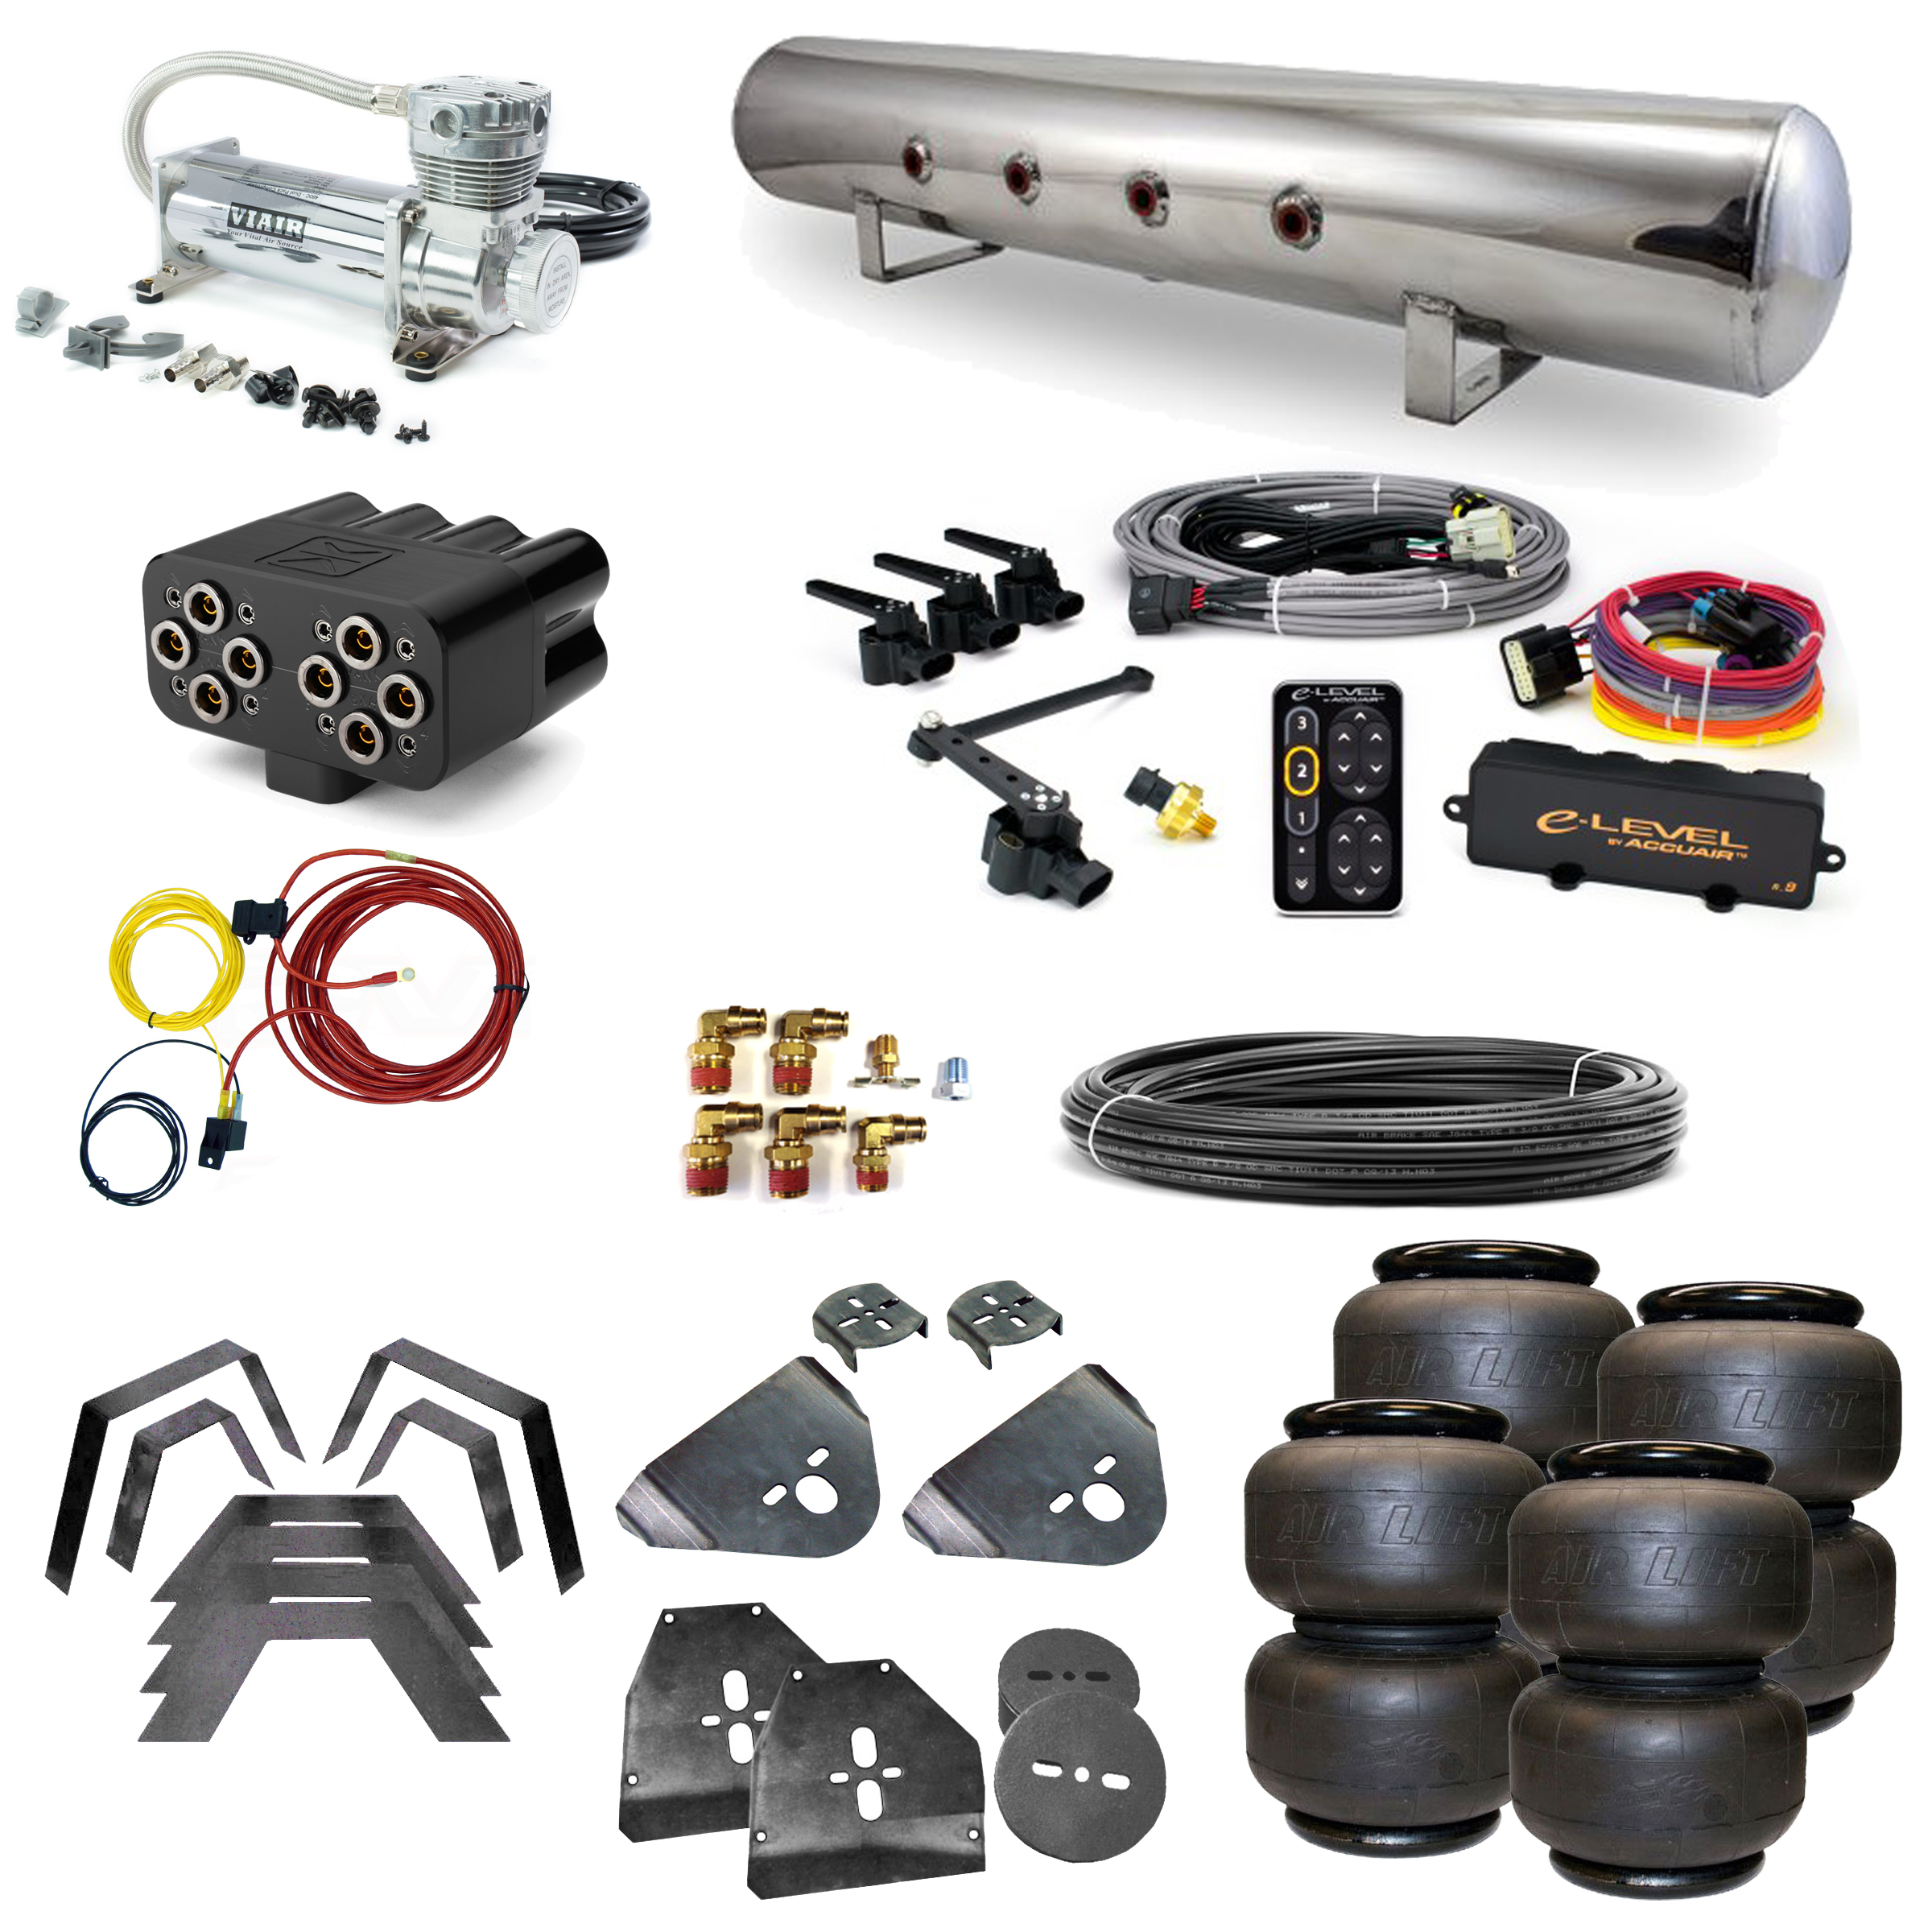 Stage 3 Air Suspension System with Accuair eLevel Management- 73-87 C10